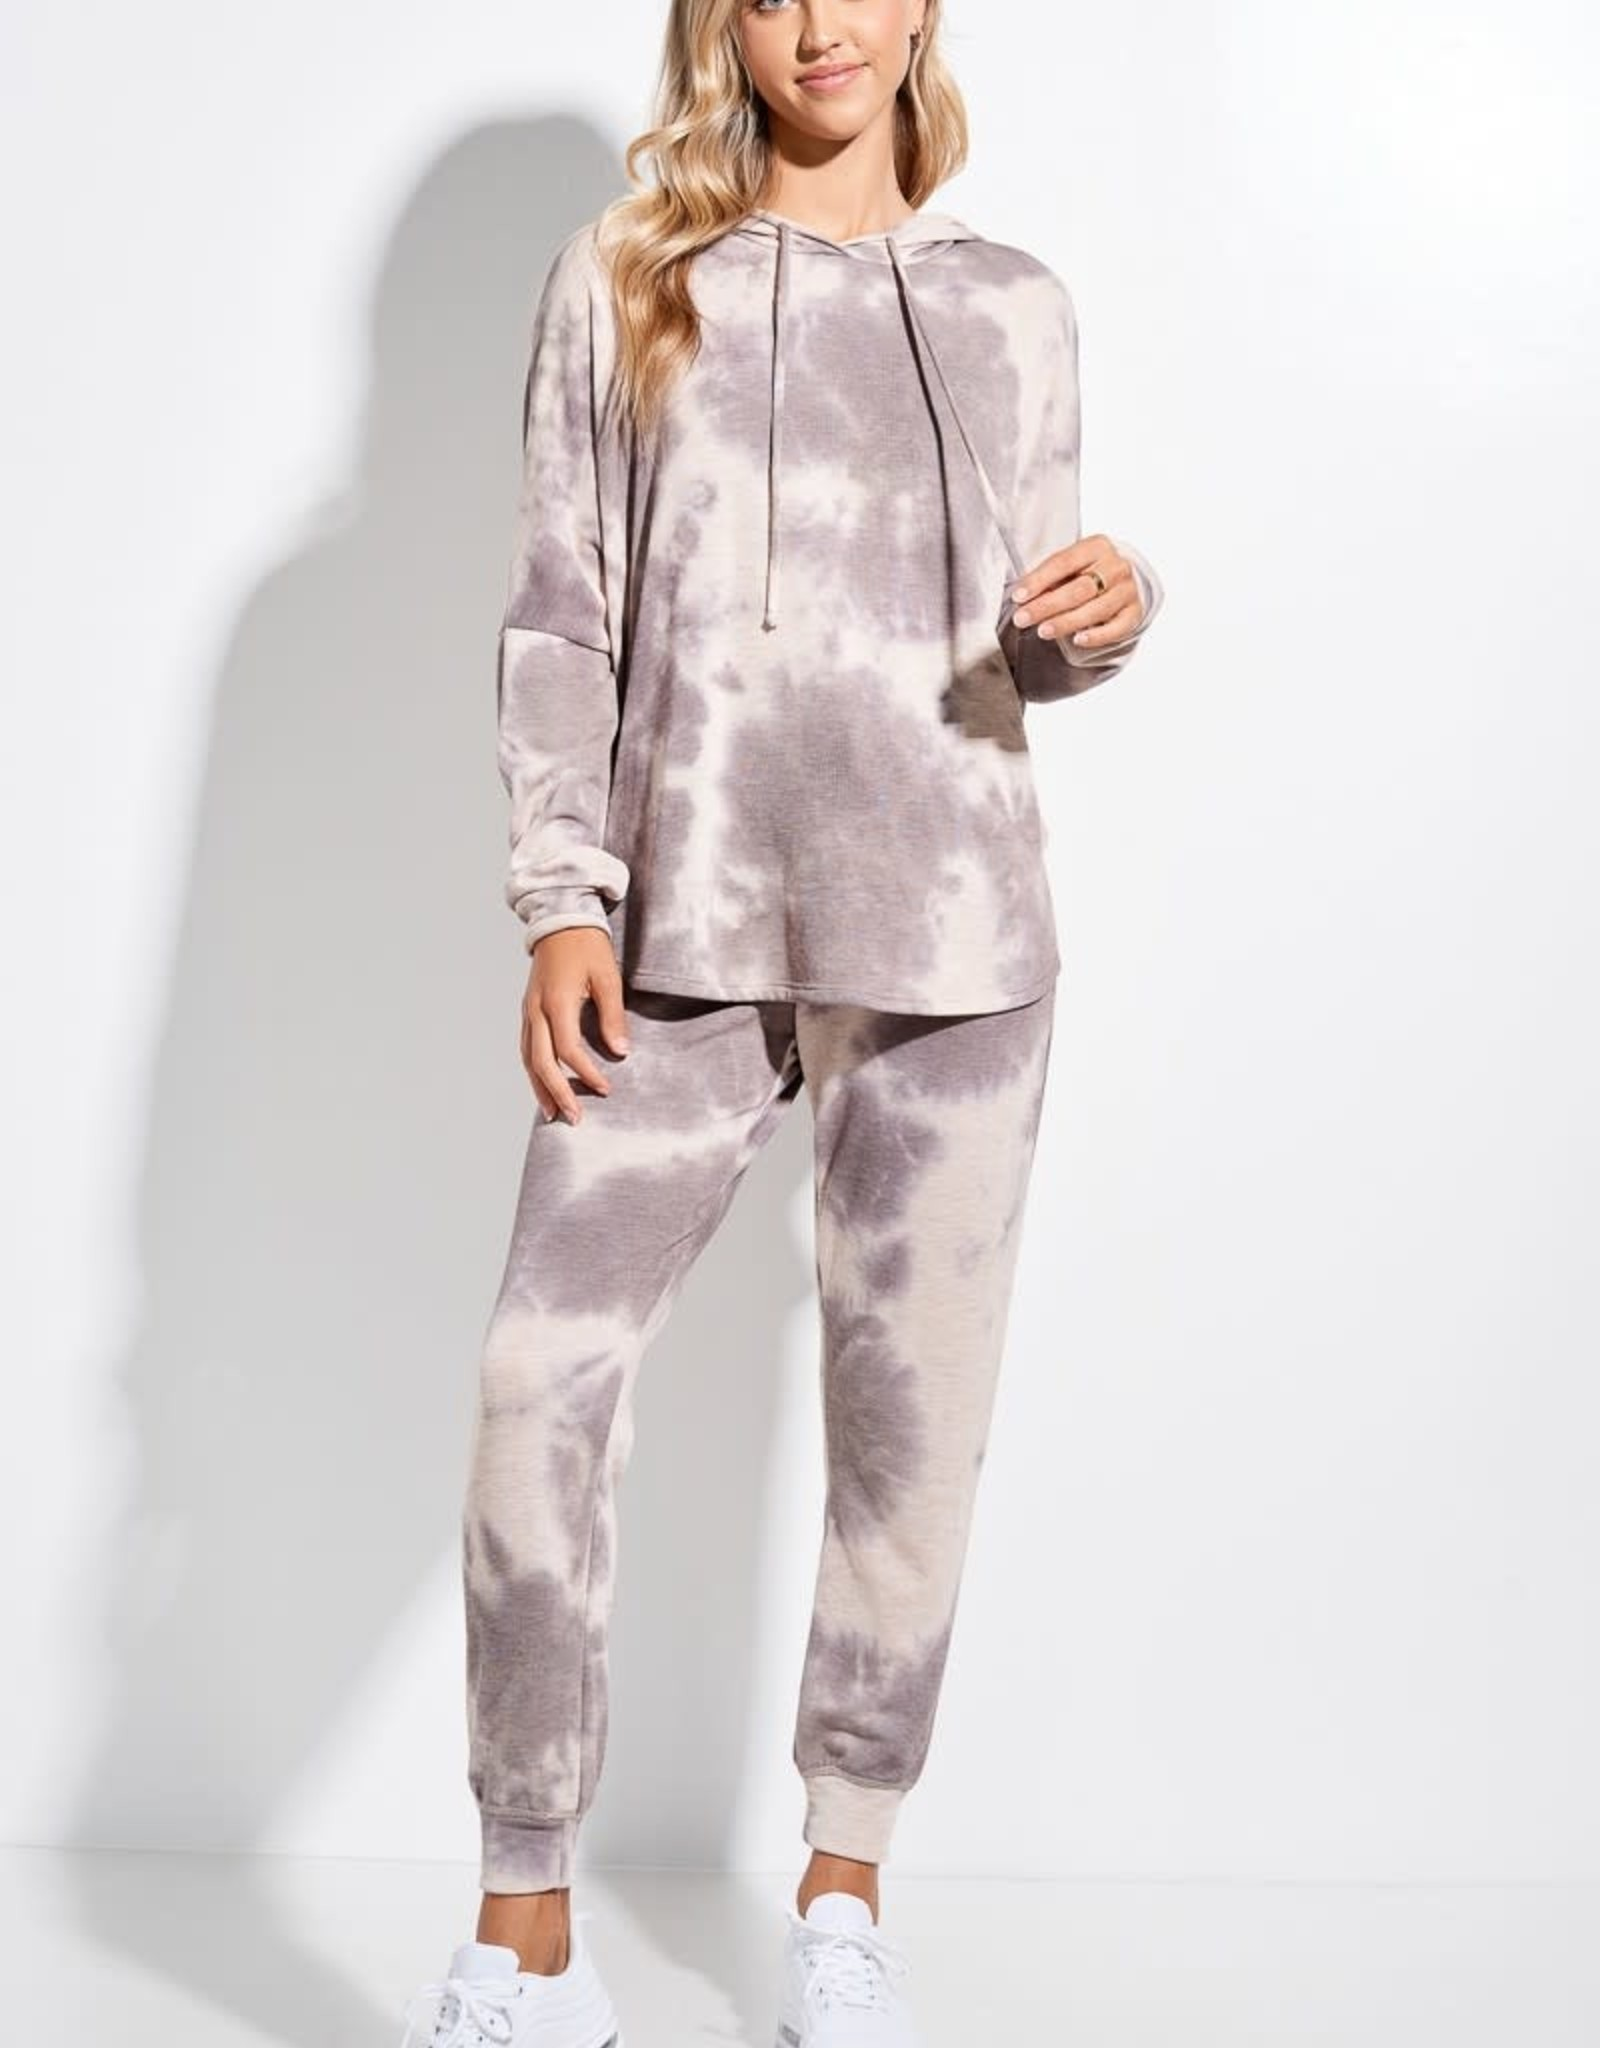 Miss Bliss Lounge Wear Tie Dye Set- Grey